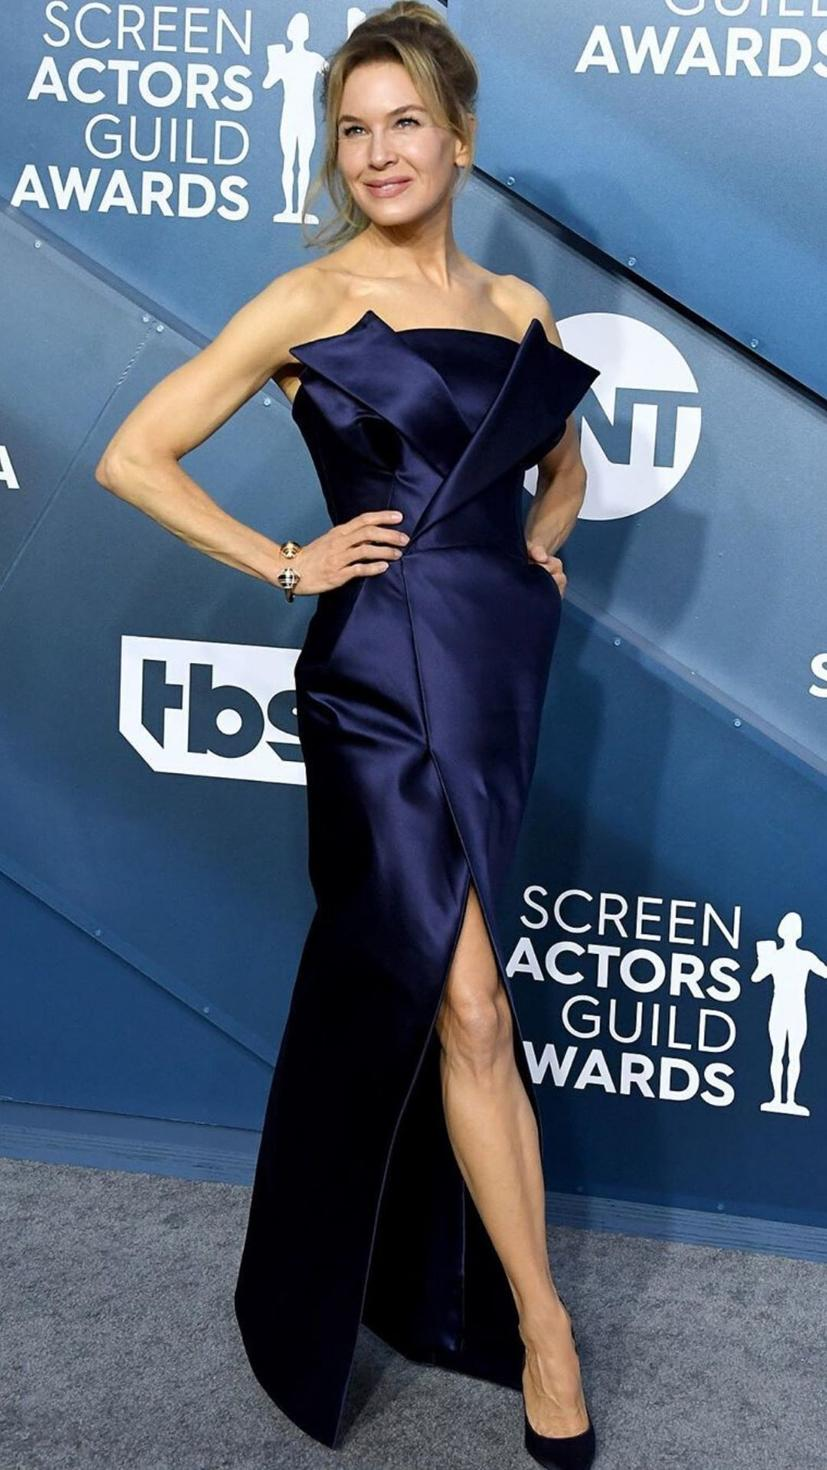 Renee Zellweger wears a satin Maison Margiela gown with Jimmy Choo shoes and Cartier jewellery